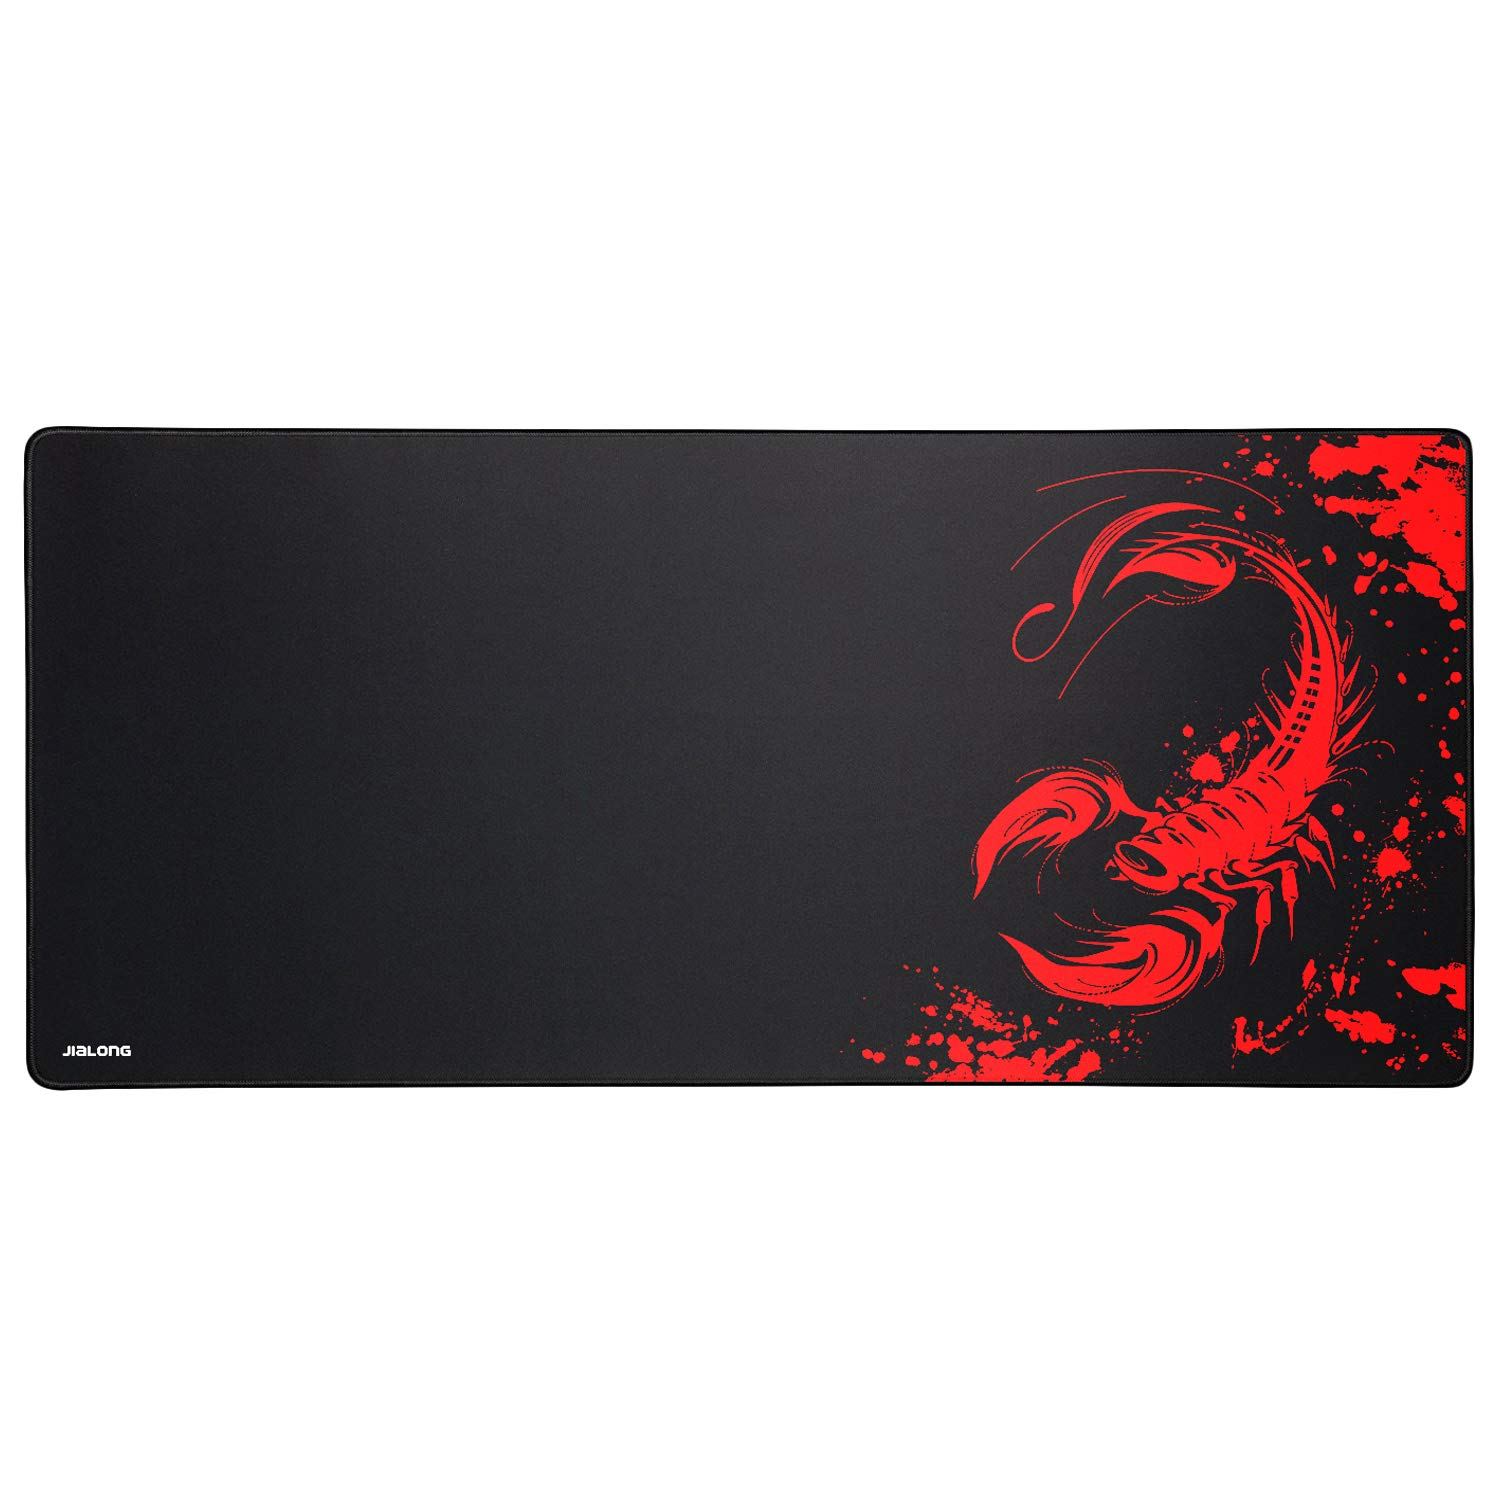 JIALONG Speed Gaming Mouse Pad Large XXL (900x400x3mm) Thick Extended Mousepad Desk Mat with Smooth Cloth Surface, Improved Precision and Speed Designed for Gamer, Office & Home